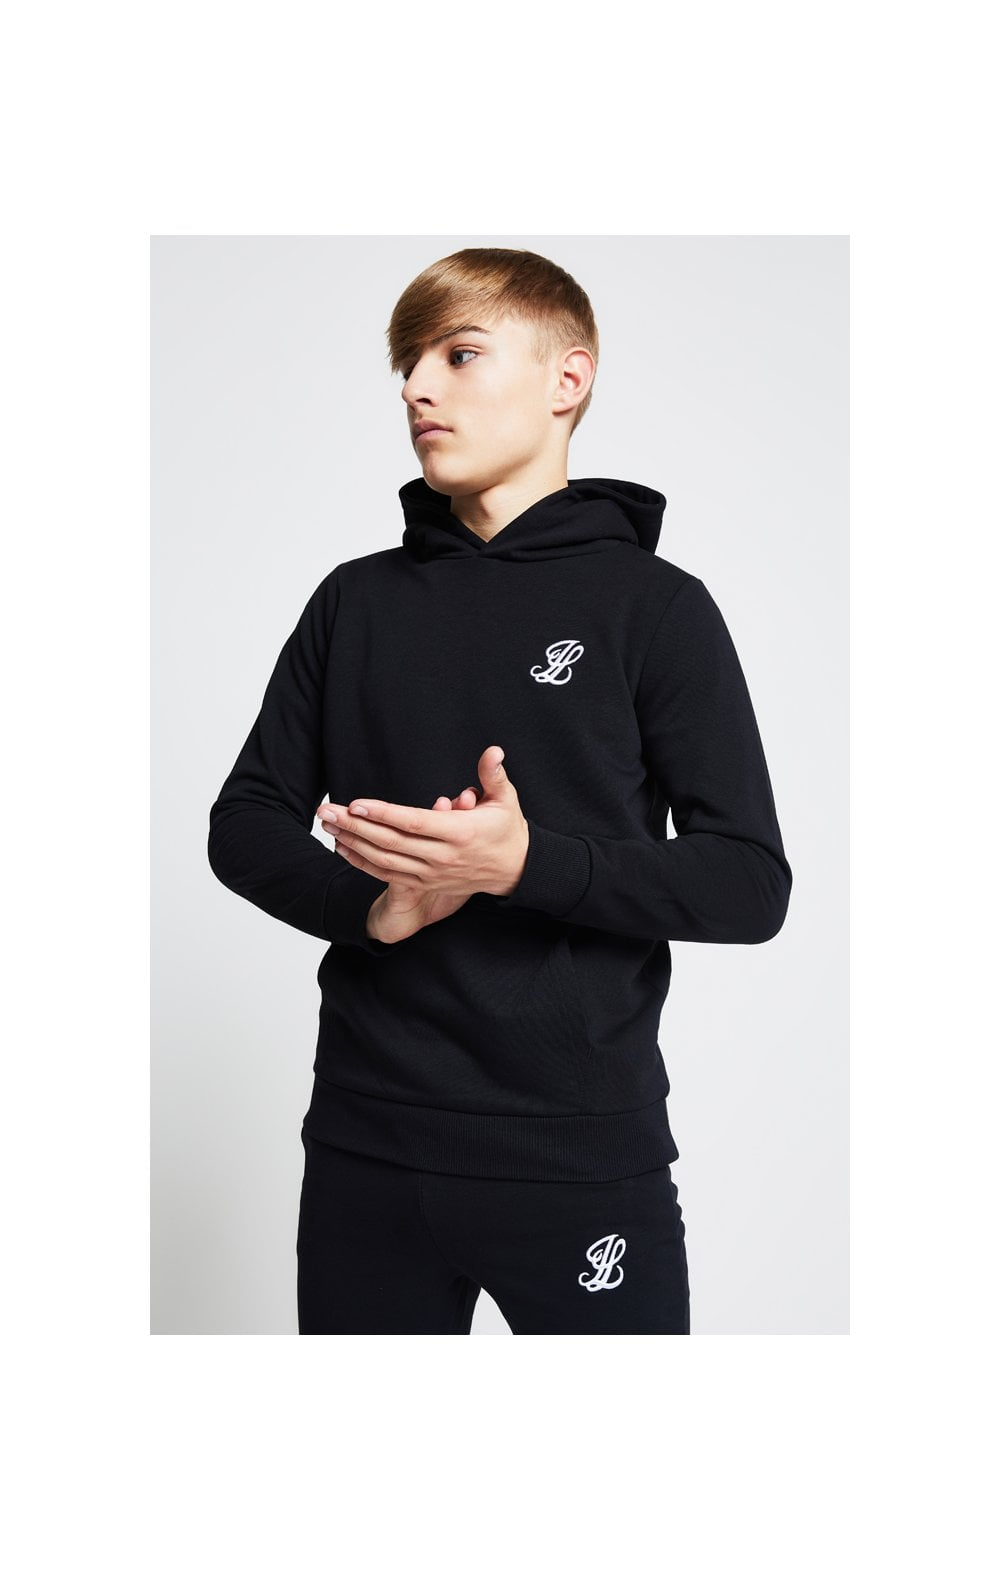 Illusive London Sudadera con Capucha - Negro (1)